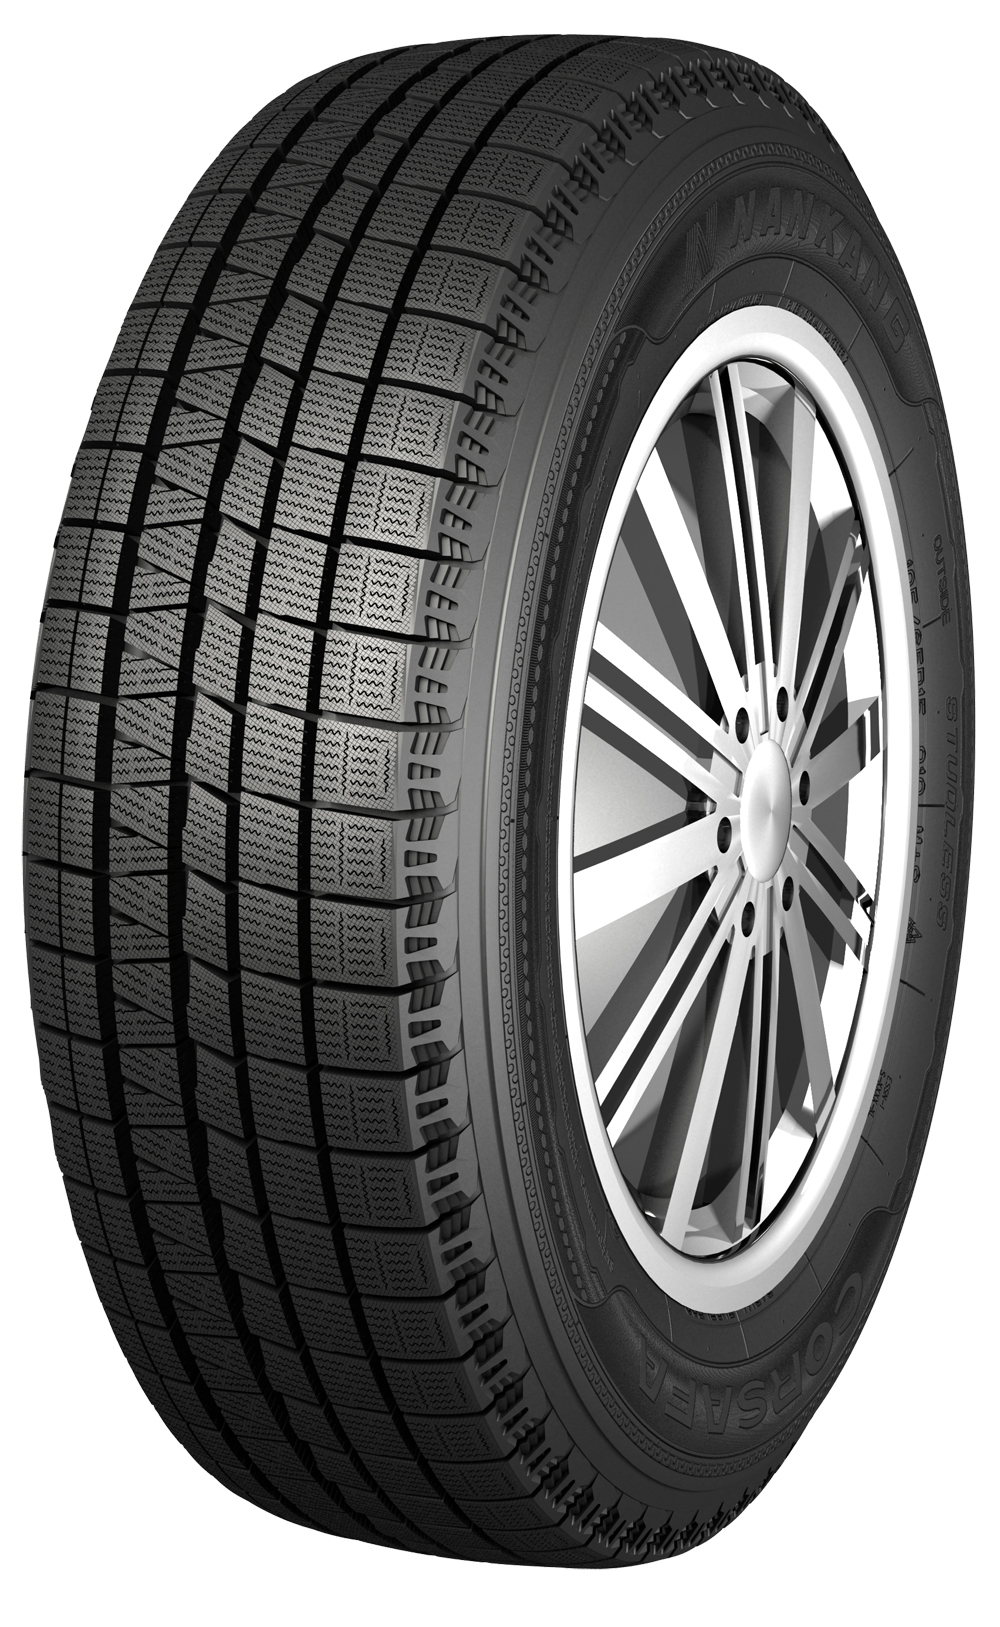 STUDLESS WINTER TIRE